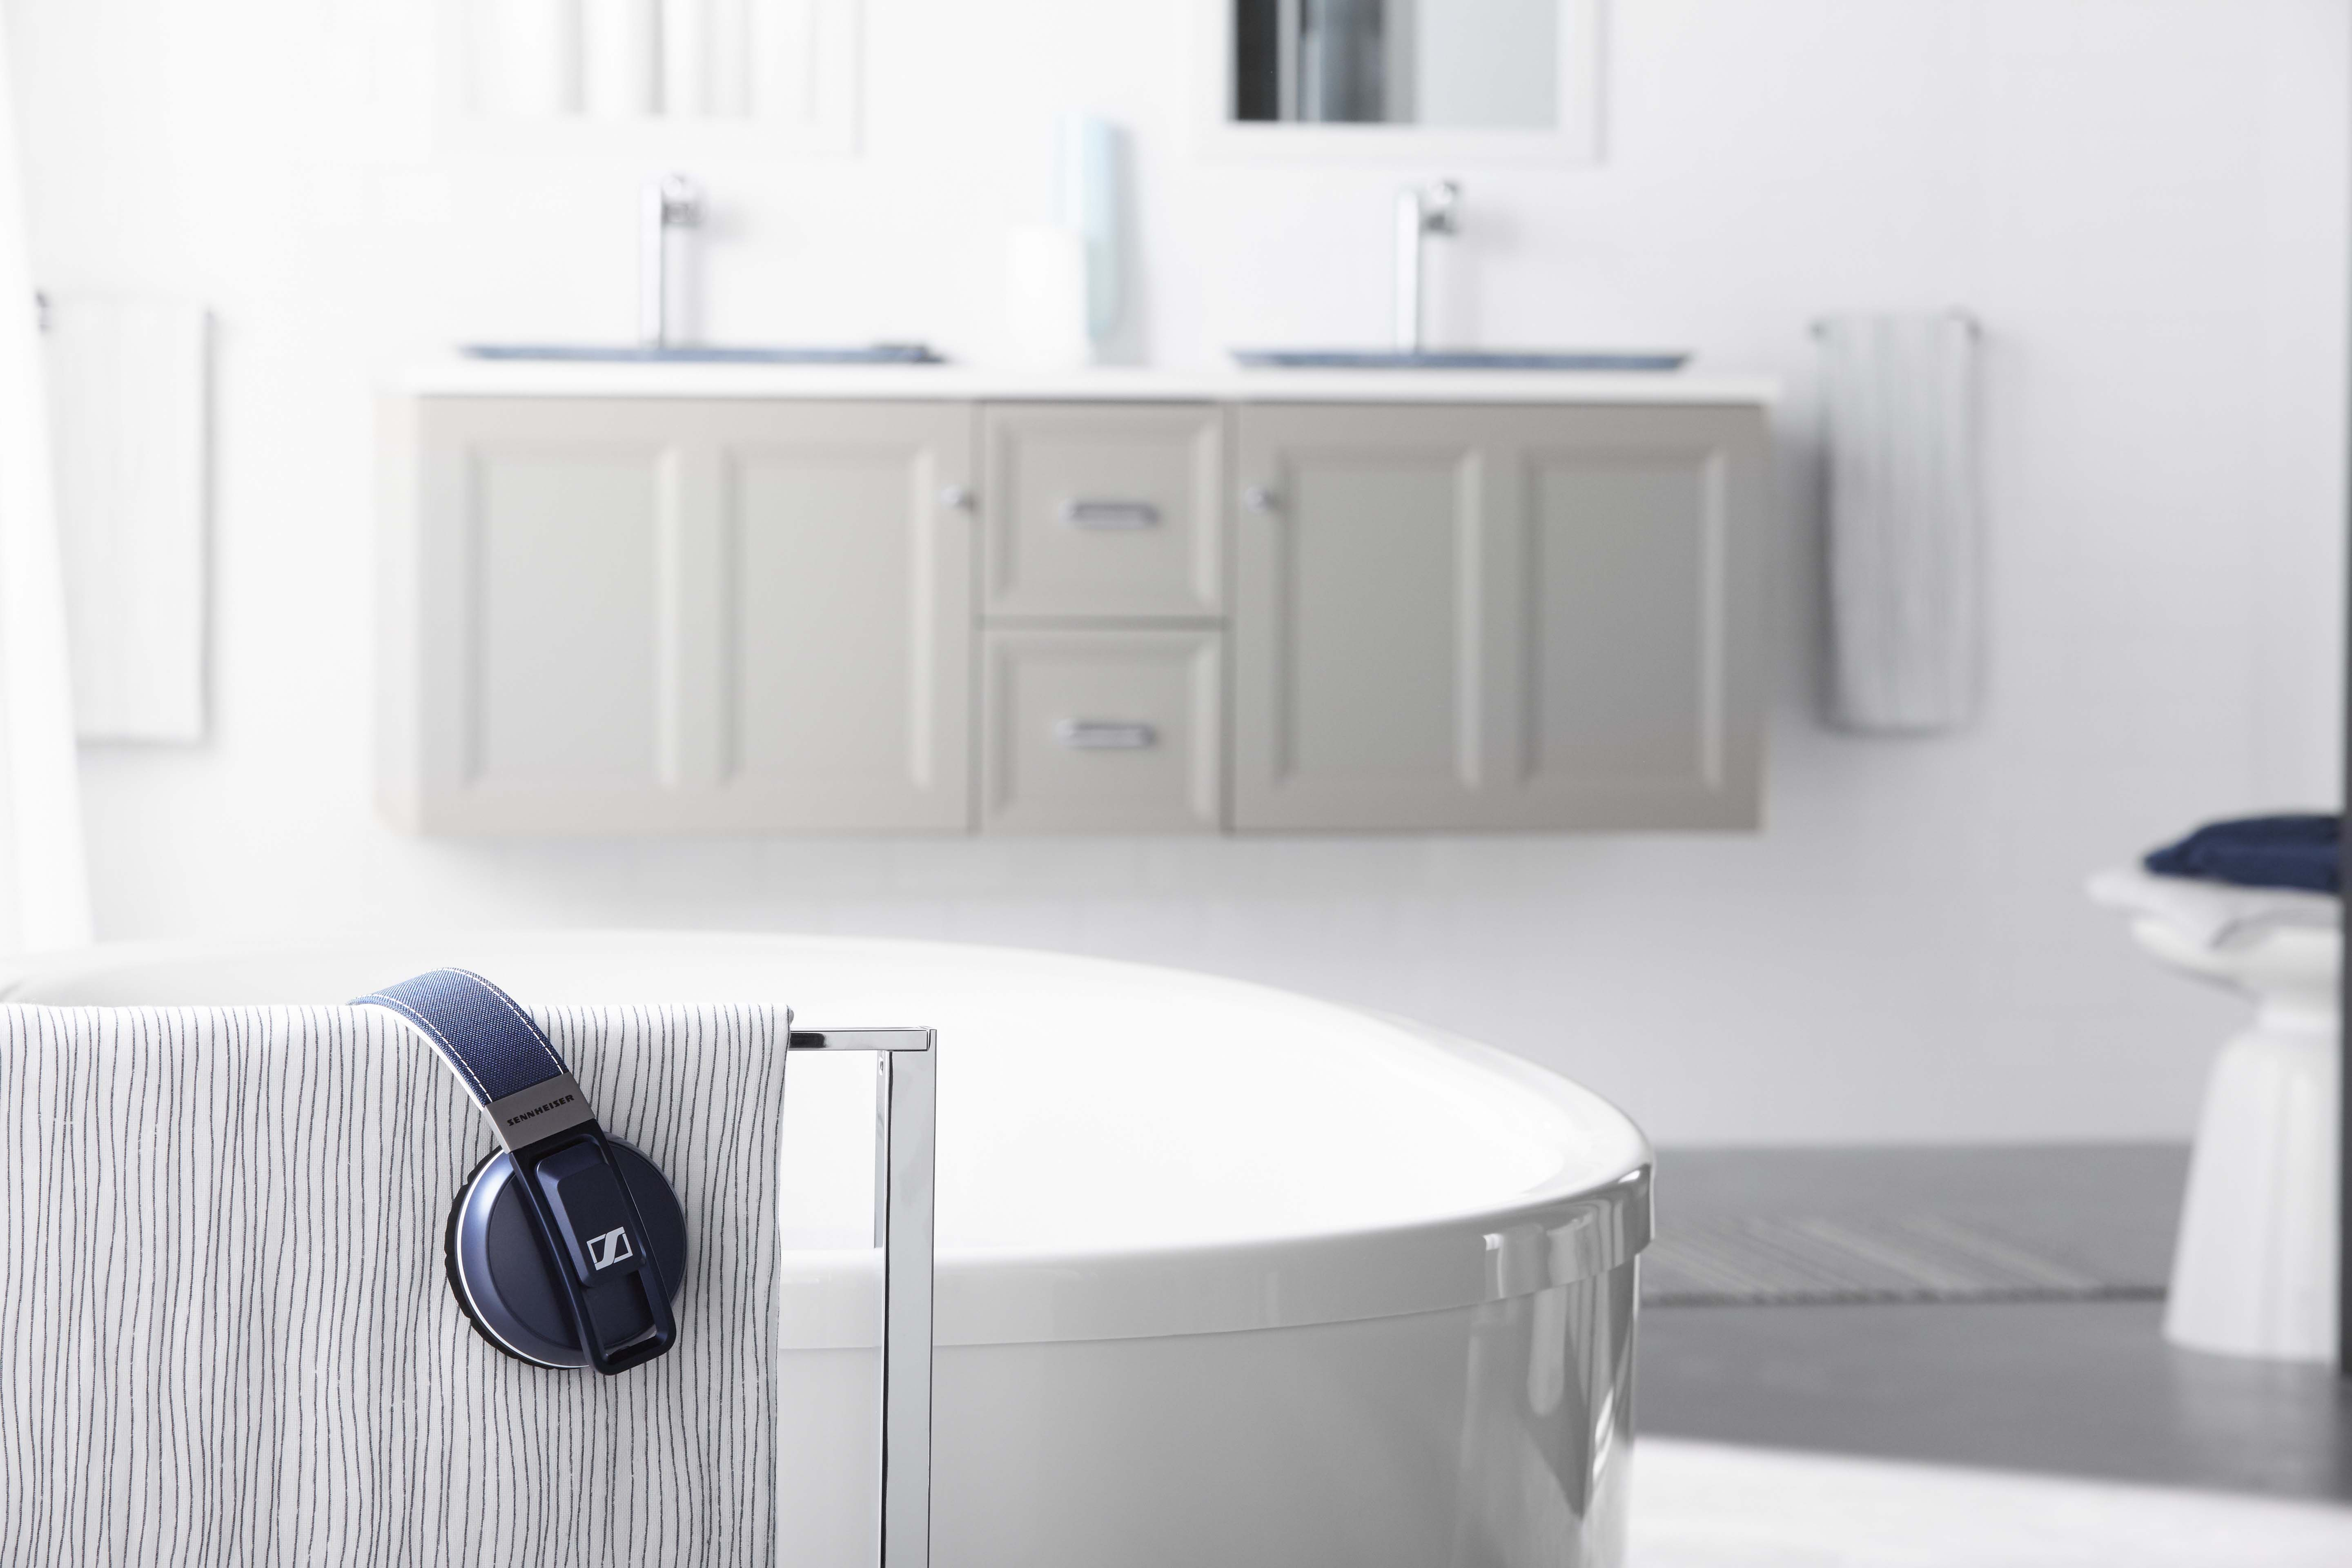 Sunstruck Freestanding BubbleMassage™ Air Bath     Damask Vanity     Composed Tall Sink Faucet     Inia Bathroom Sink     Warm natural light, soft grays and a deep soaking bath make this an ideal spot to escape to. All you need is the right music.